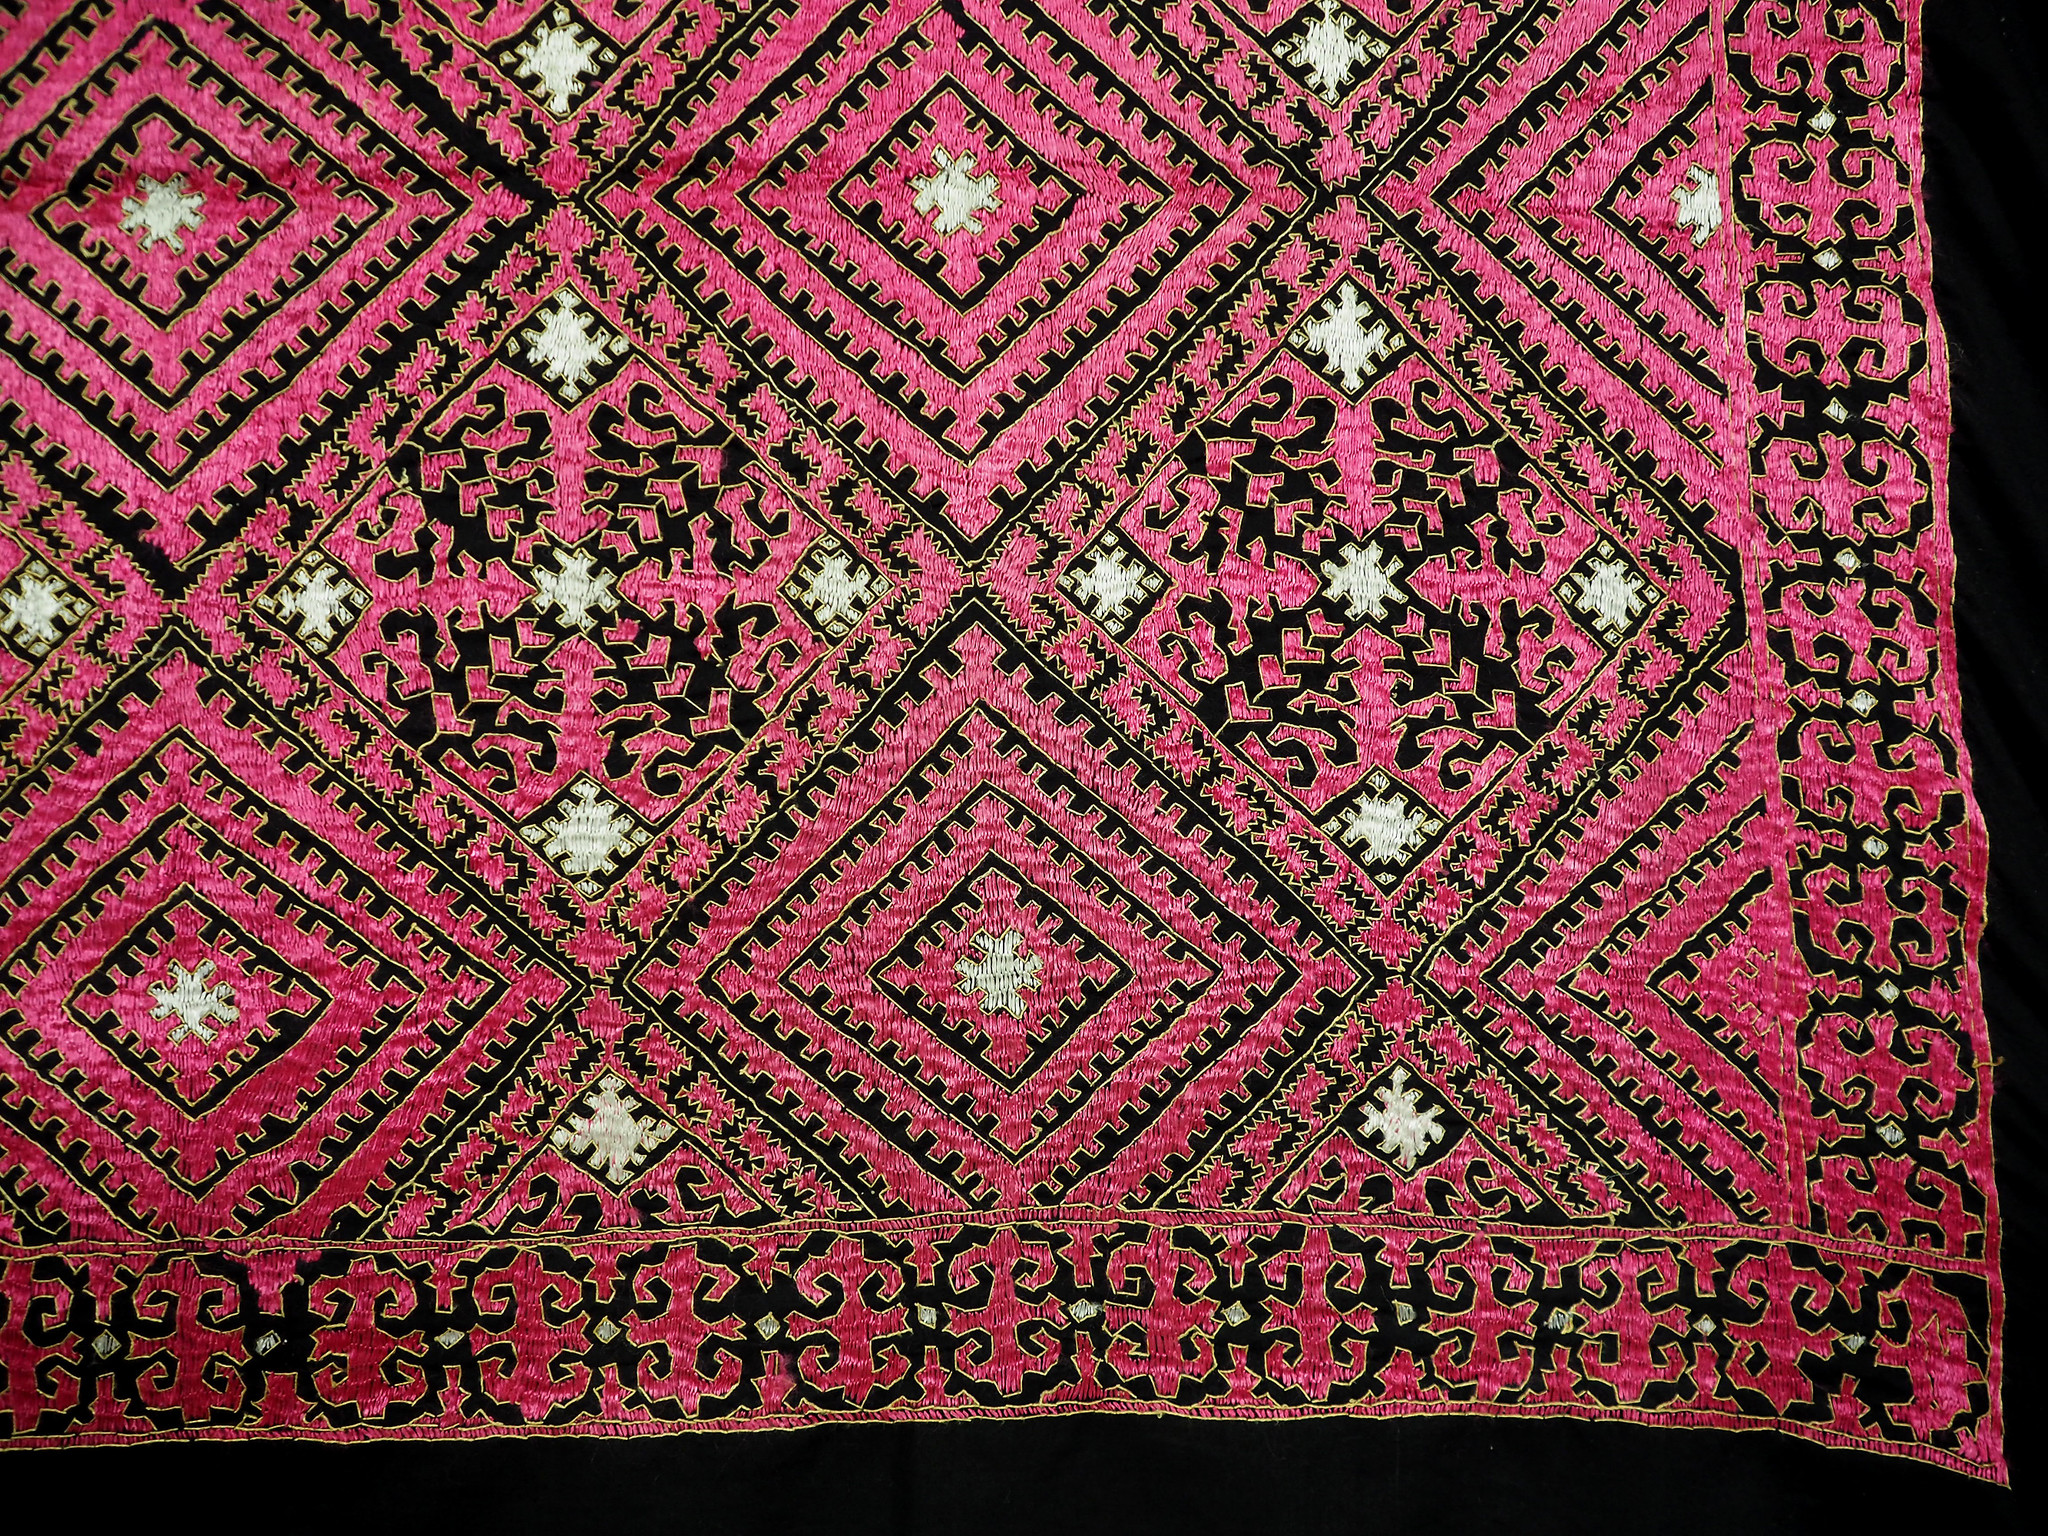 225x225 cm silk embroidered Pulkari  Bed coverlet  Swat Valley